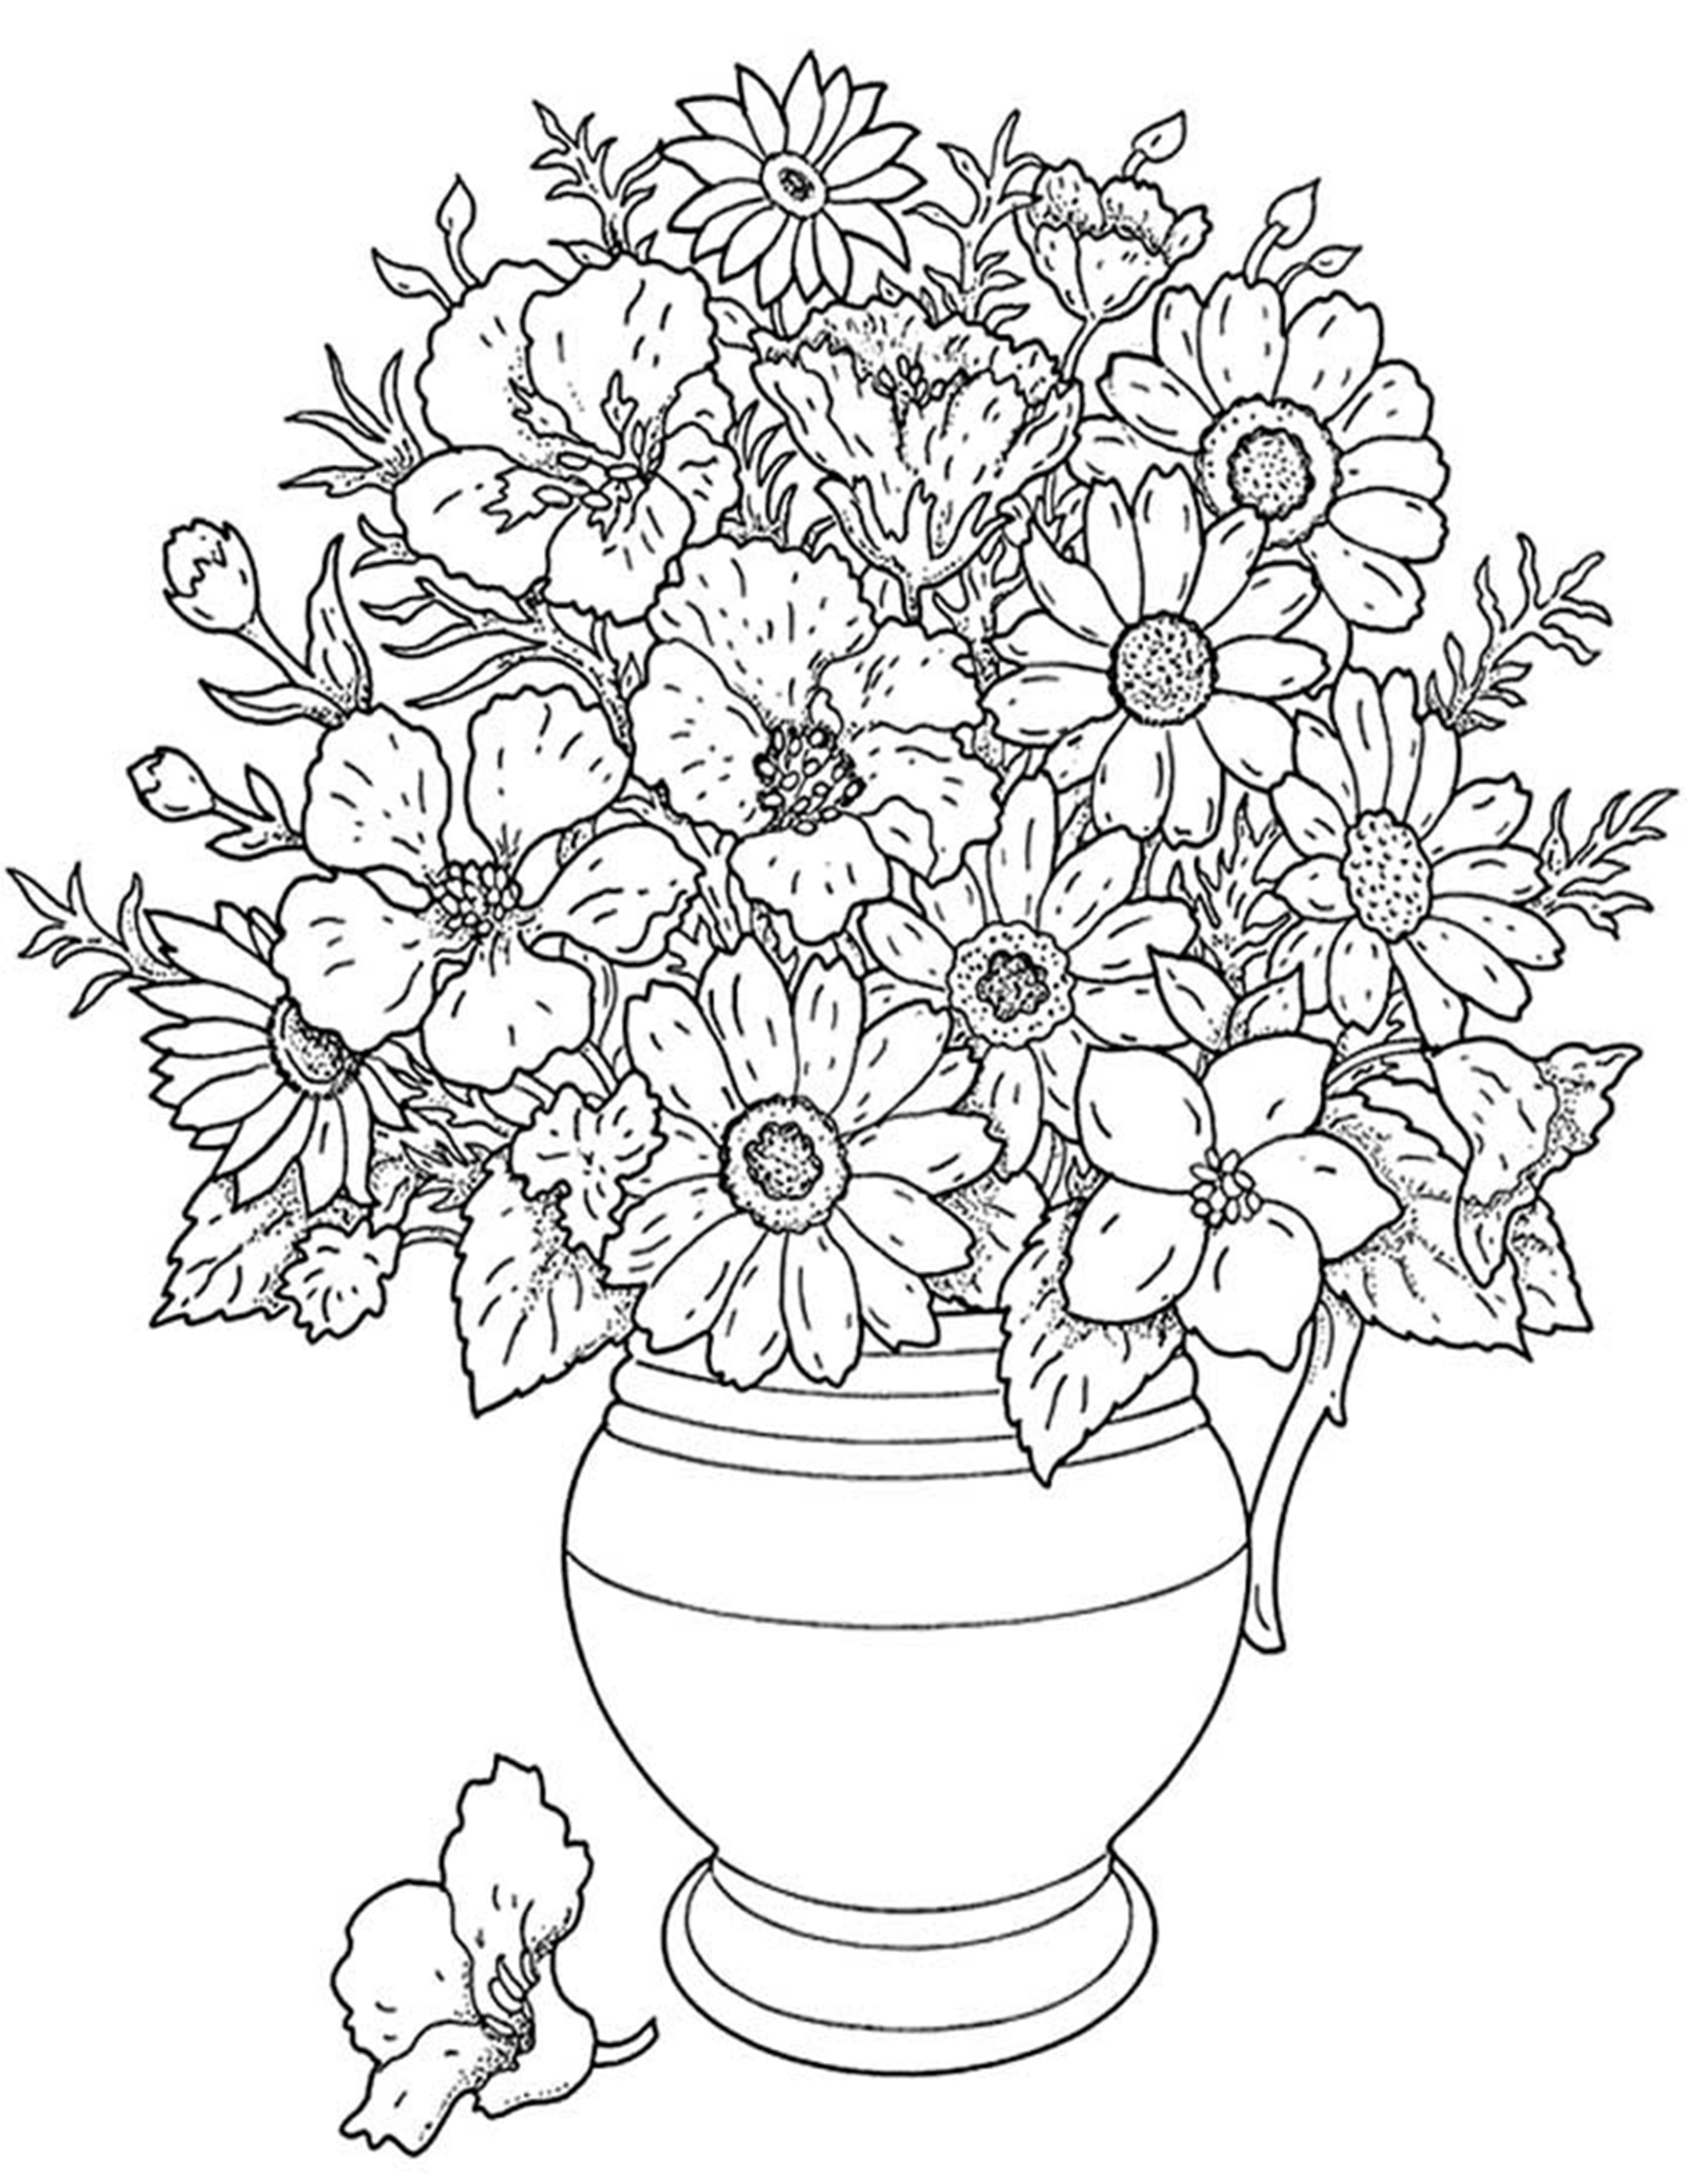 colouring pictures of plants free printable flower coloring pages for kids best pictures plants colouring of